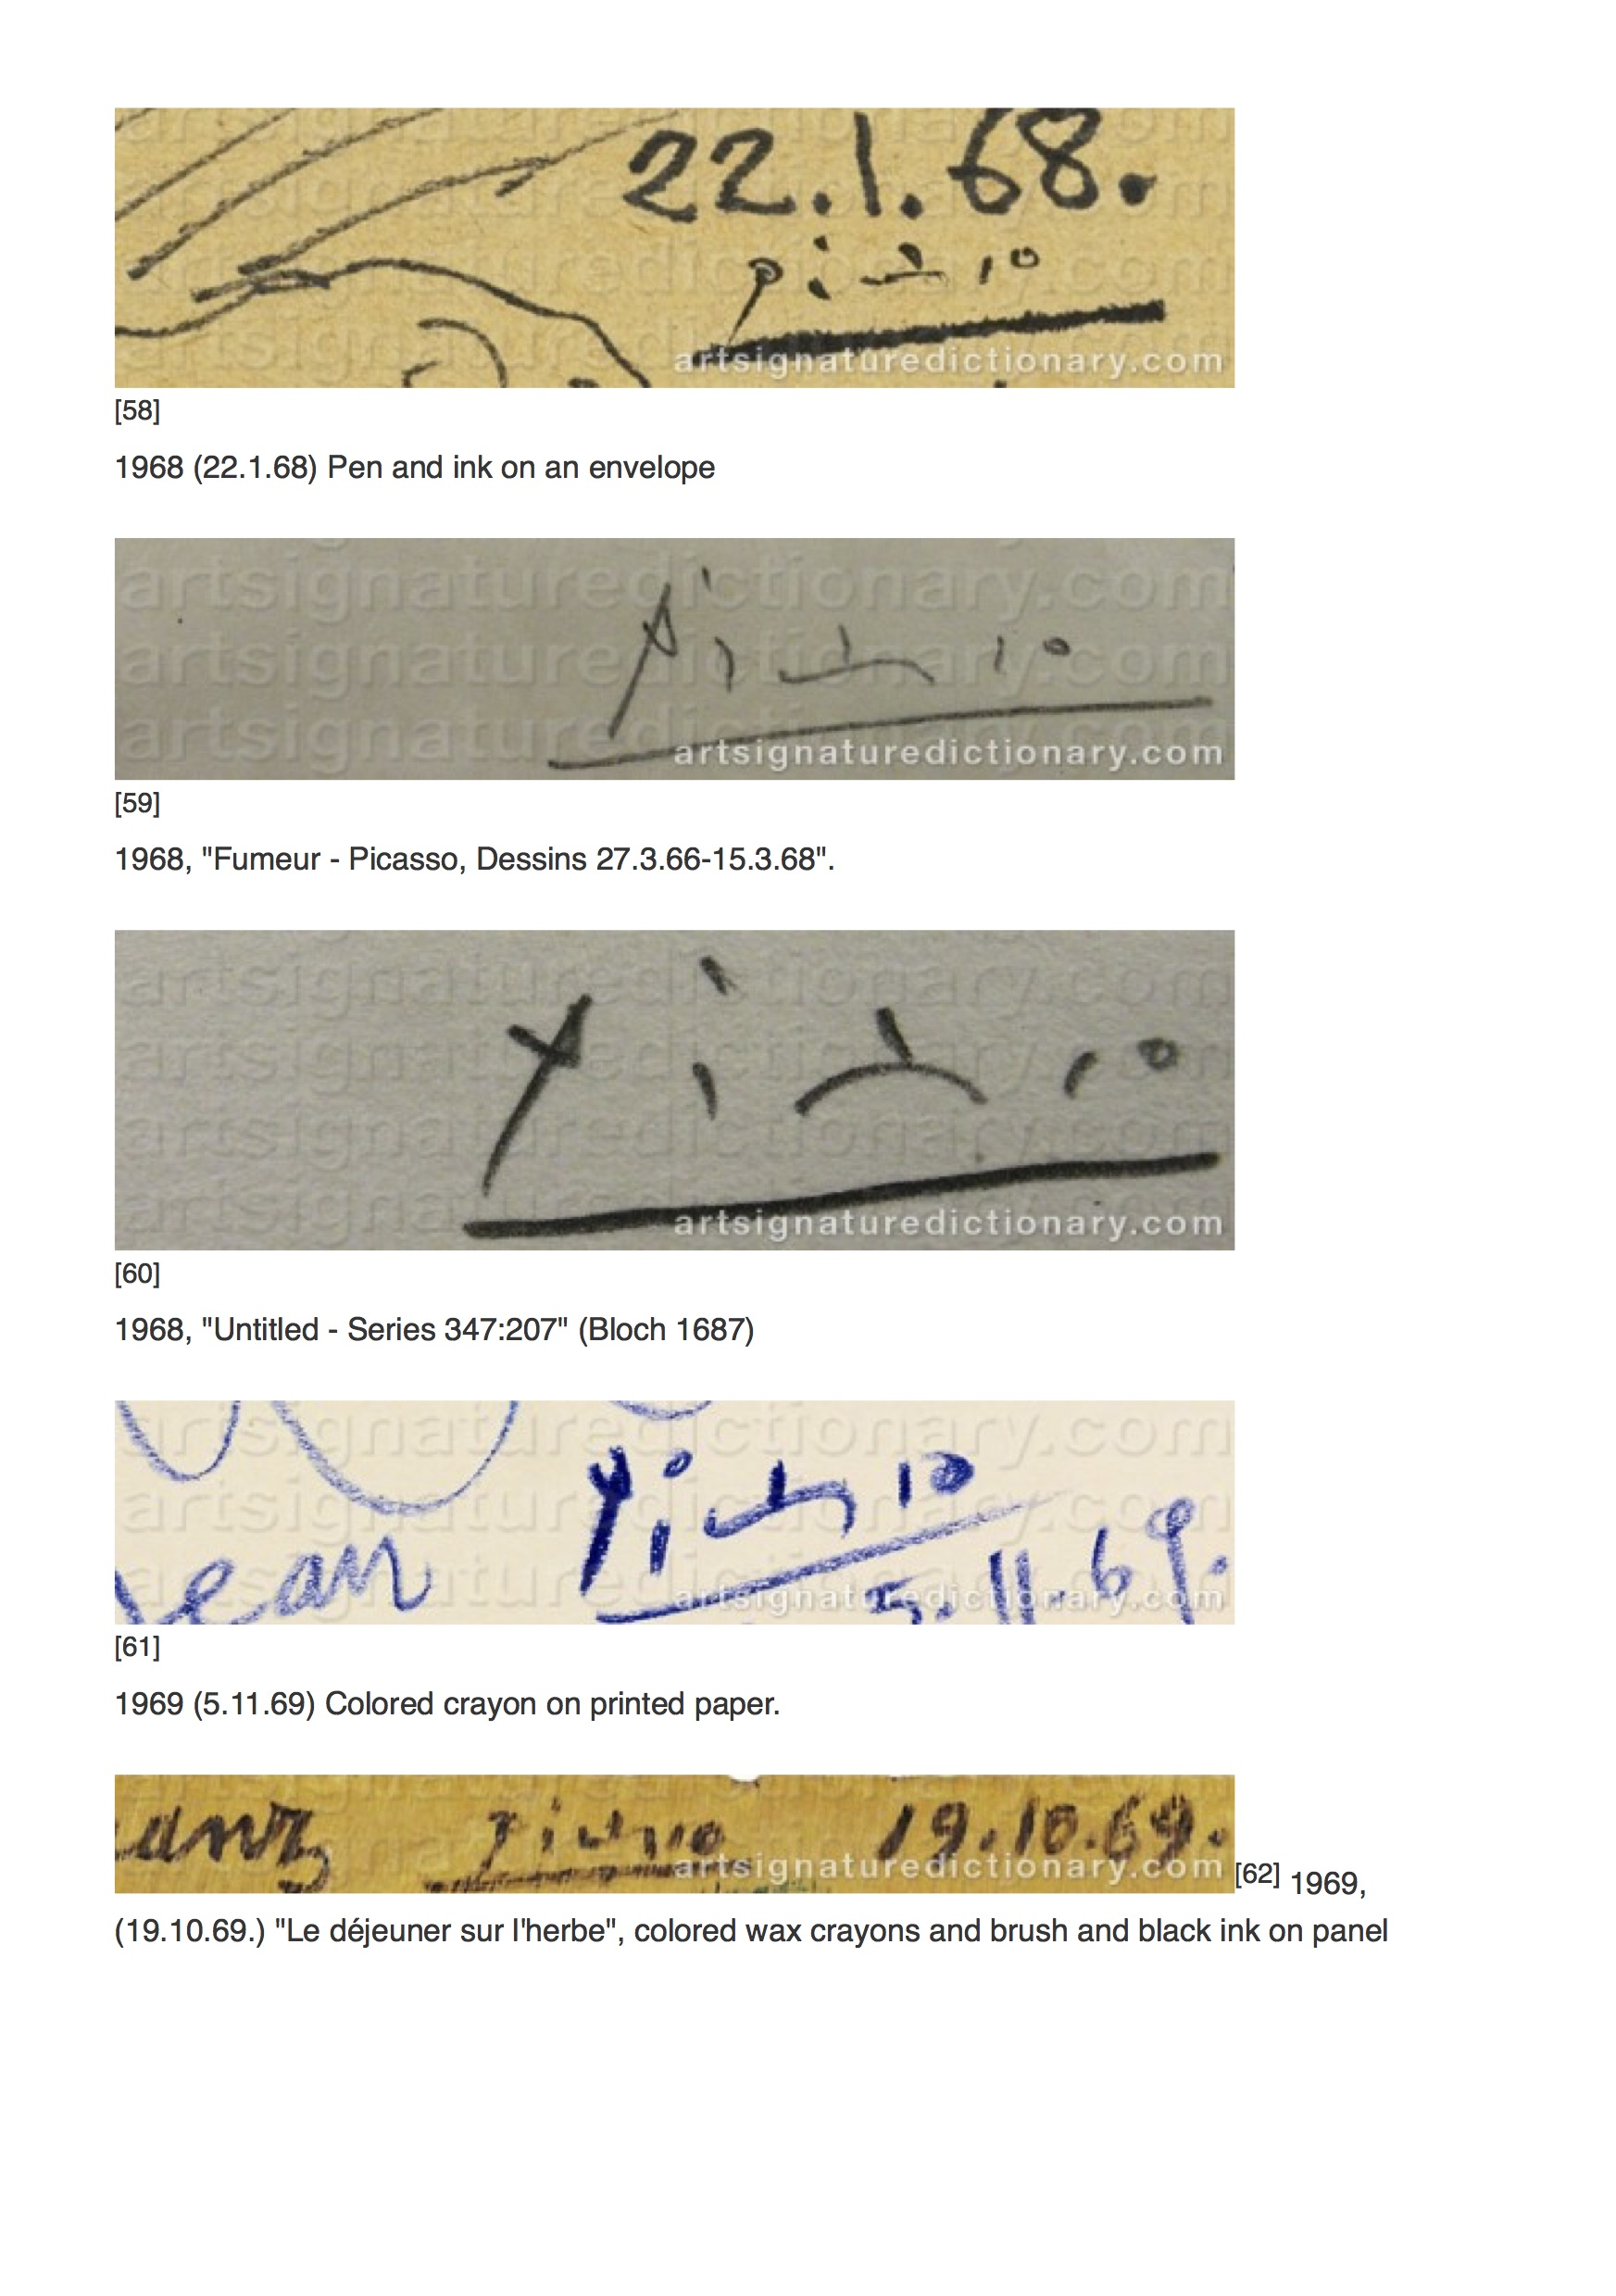 PICASSO, Pablo _ Artist's signatures and monograms, biographies and prices by Art Signature Dictionary13.jpg